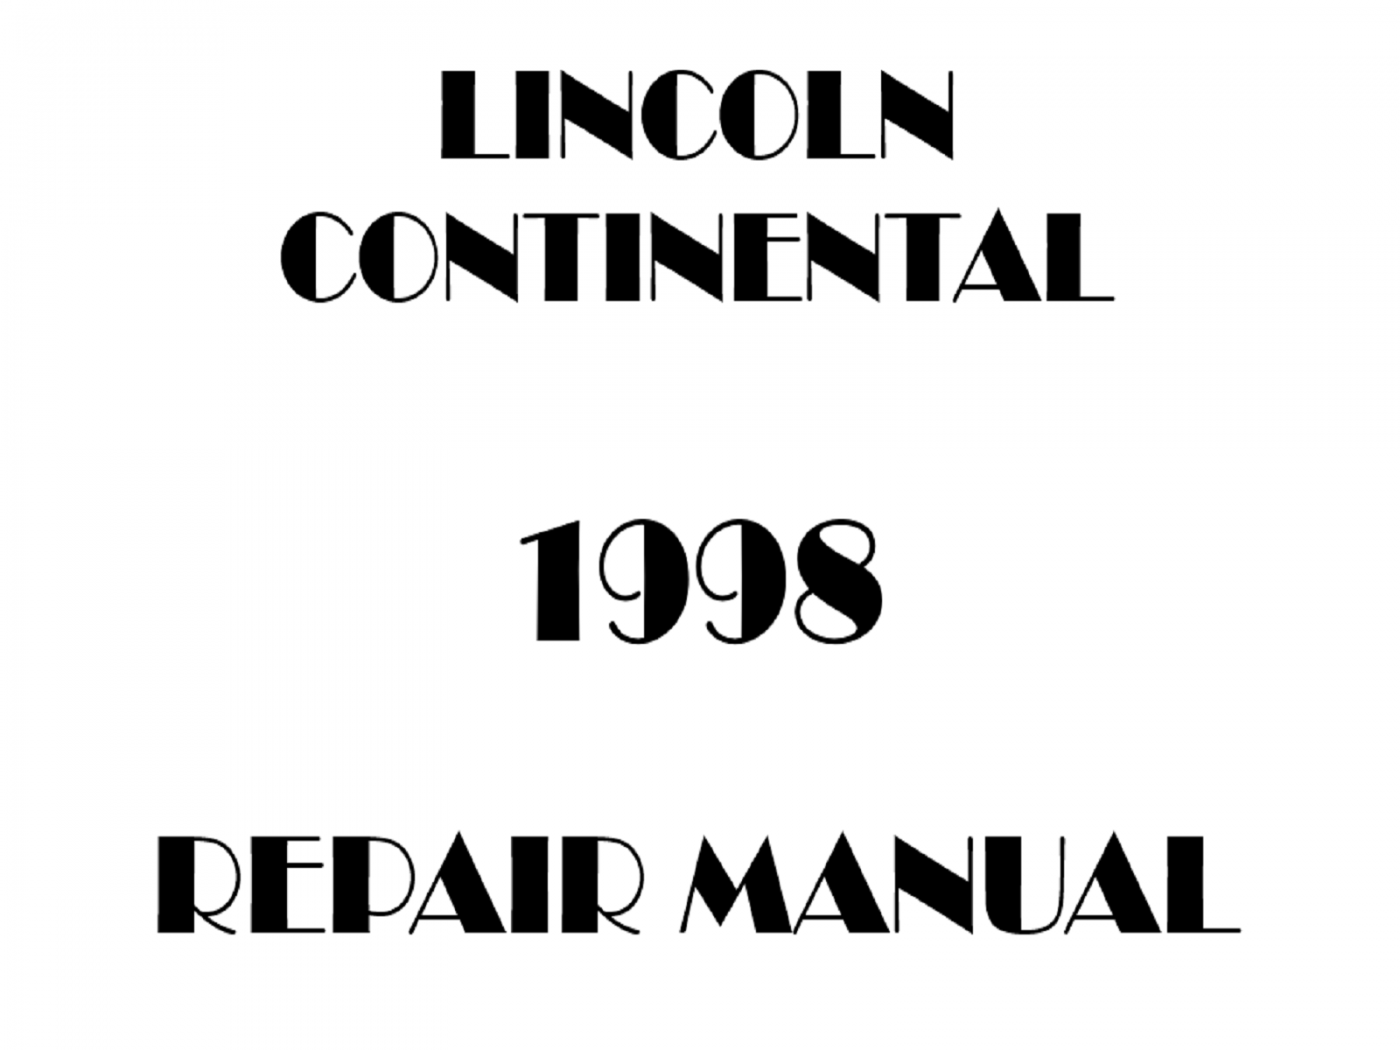 1998 Lincoln Continental repair manual